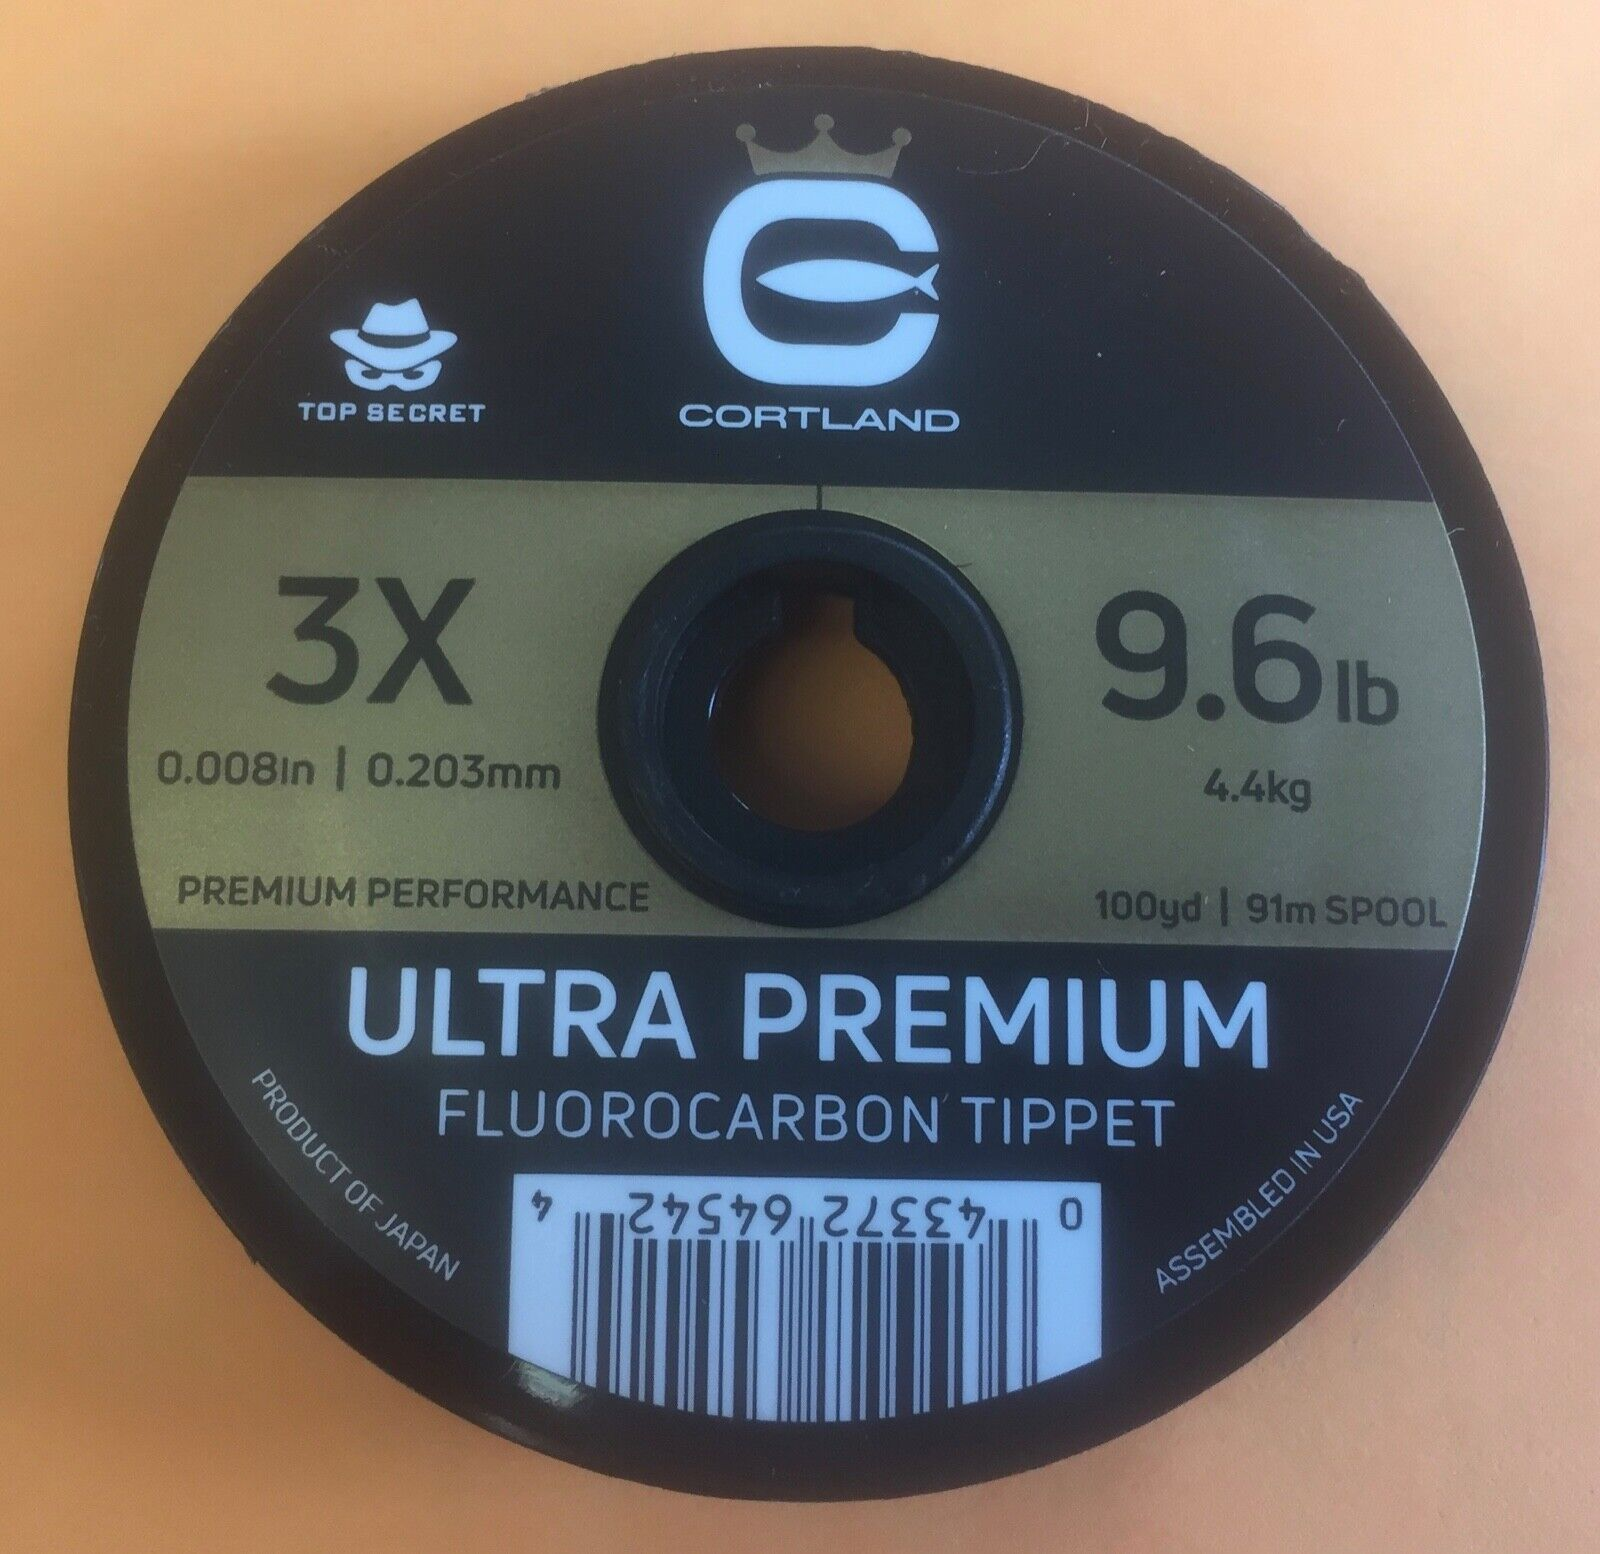 Cortle Ultra Premium Fluoroautobon Tippet 3X 100 Yards Top Secret